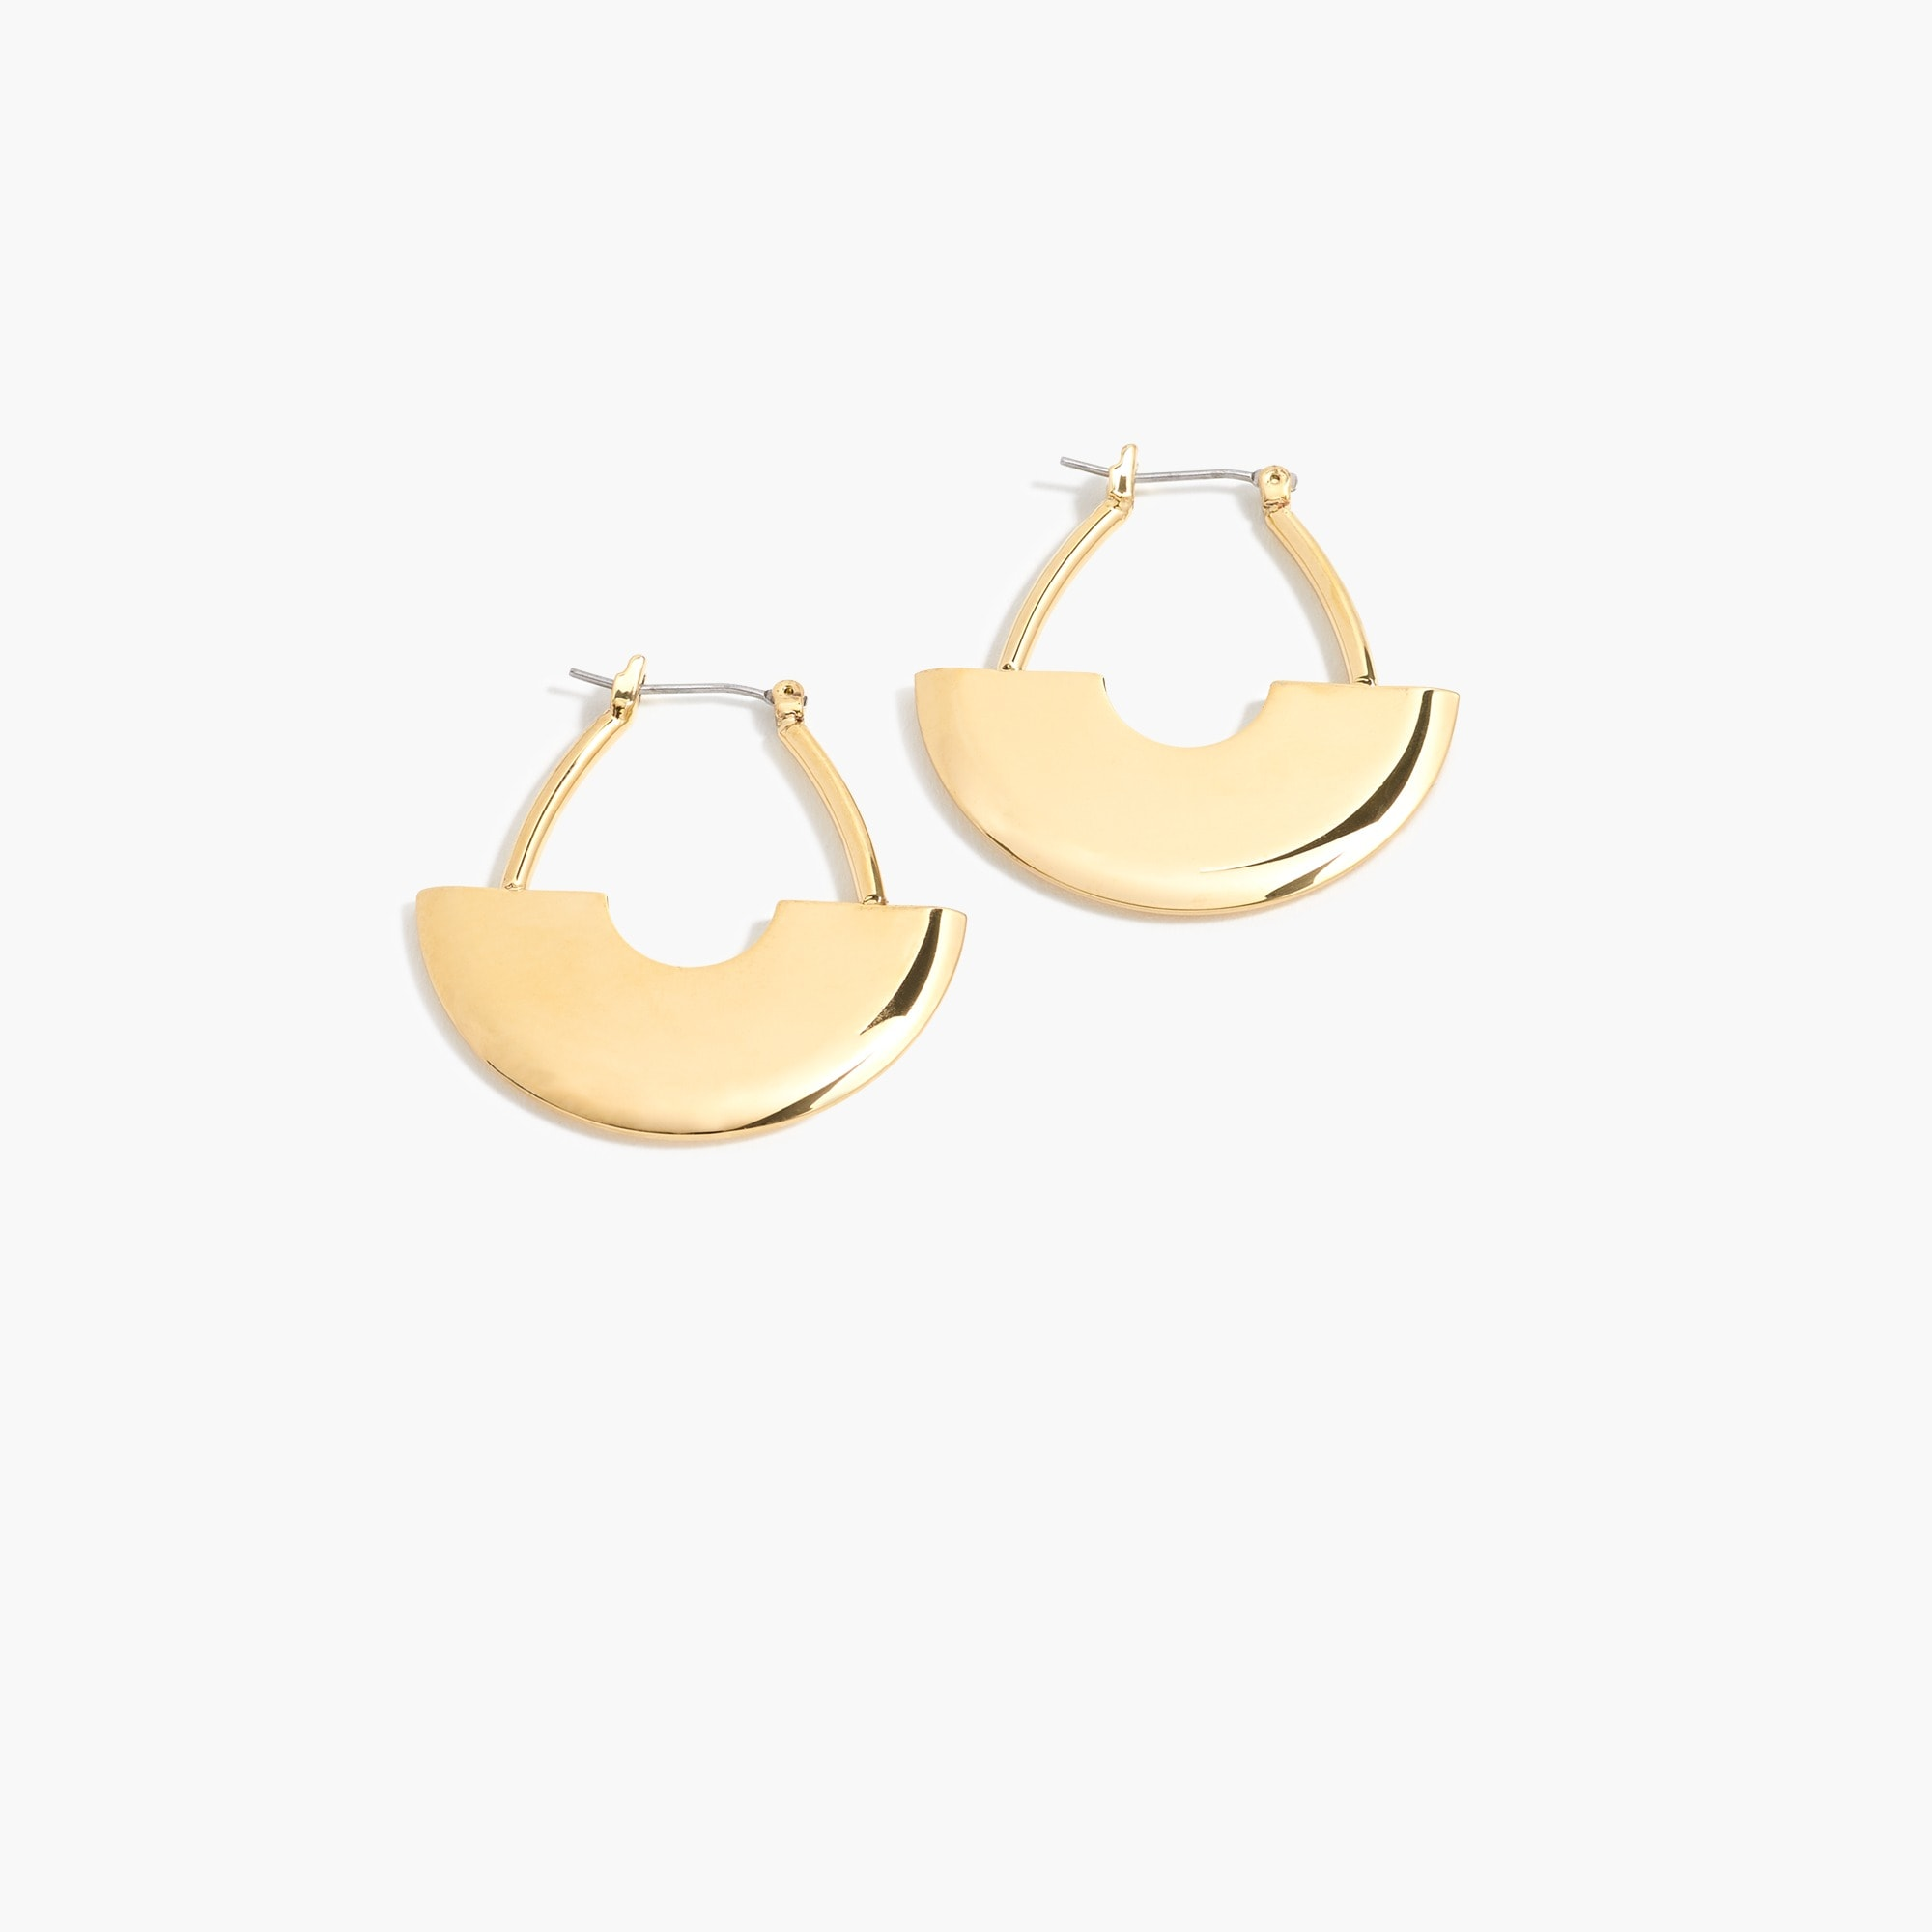 Gold art deco hoop earrings